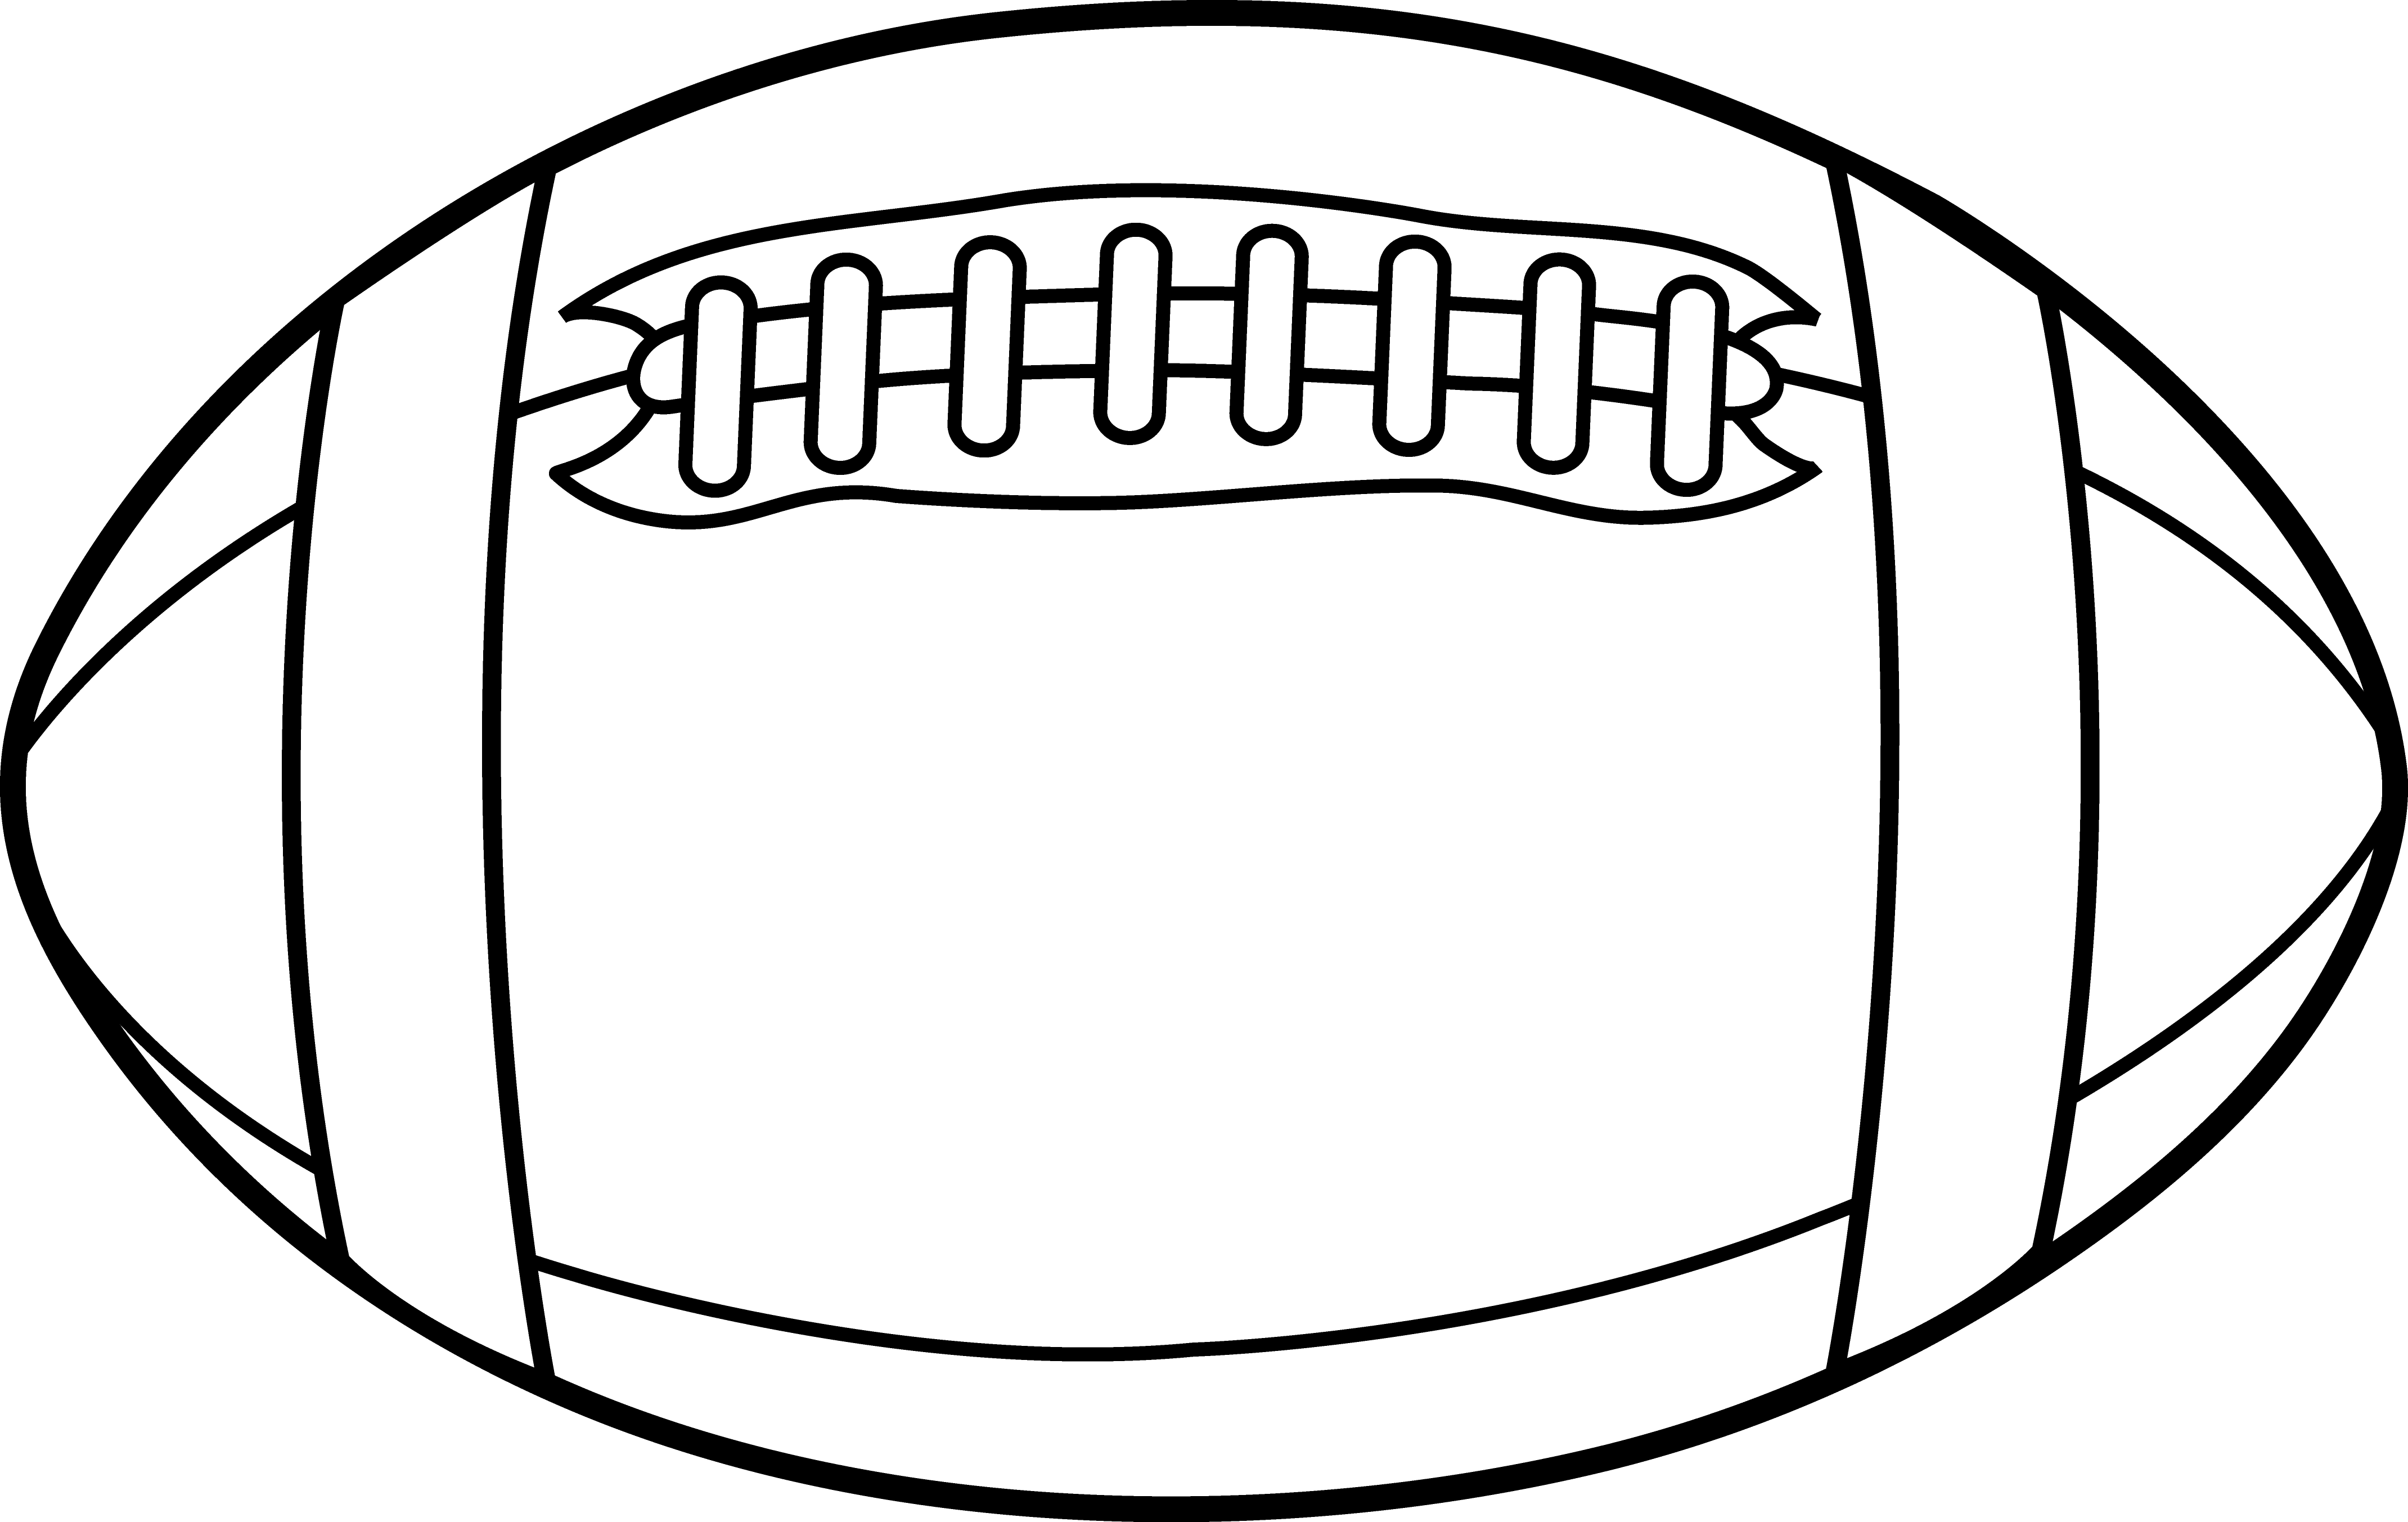 jpg free stock American football . Black and white sport clipart